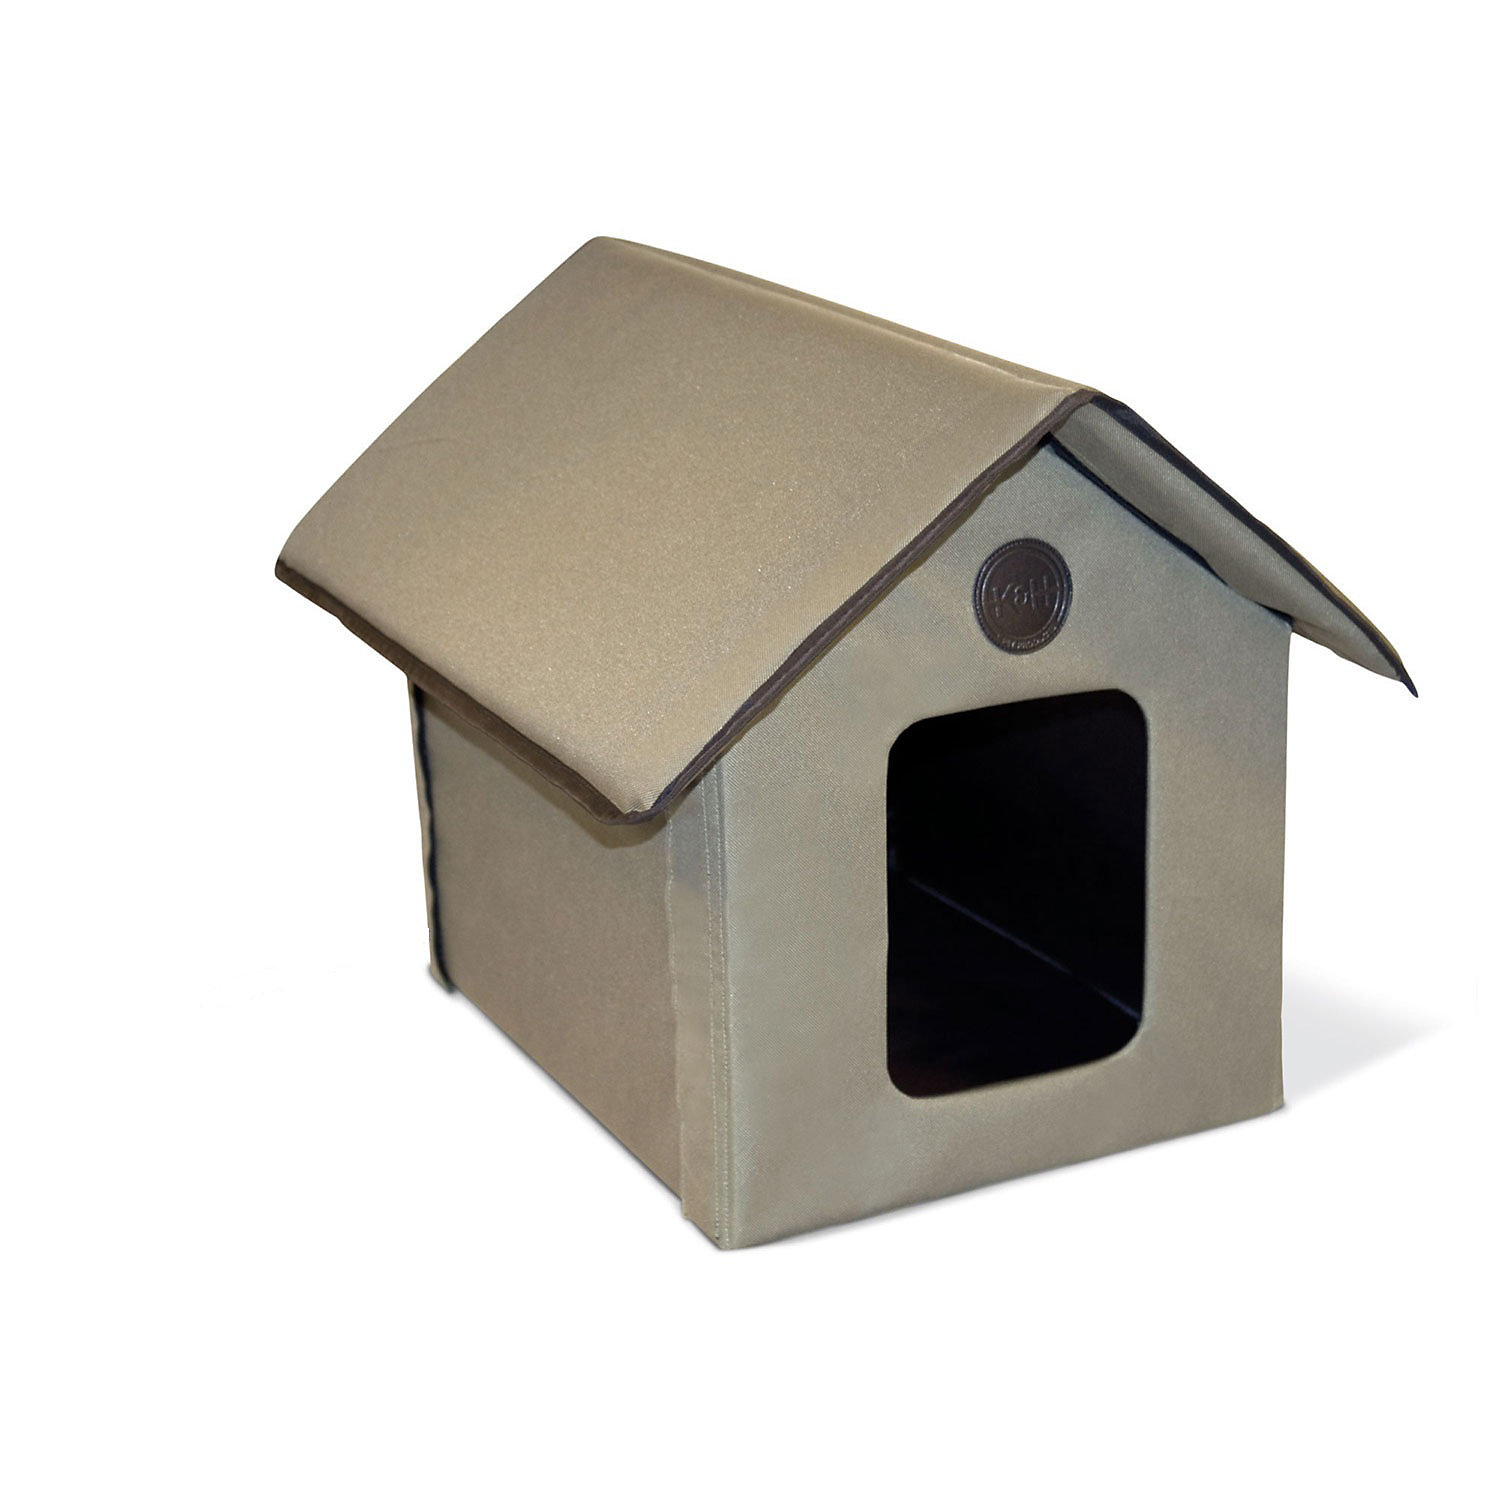 KH Outdoor Kitty House in Olive